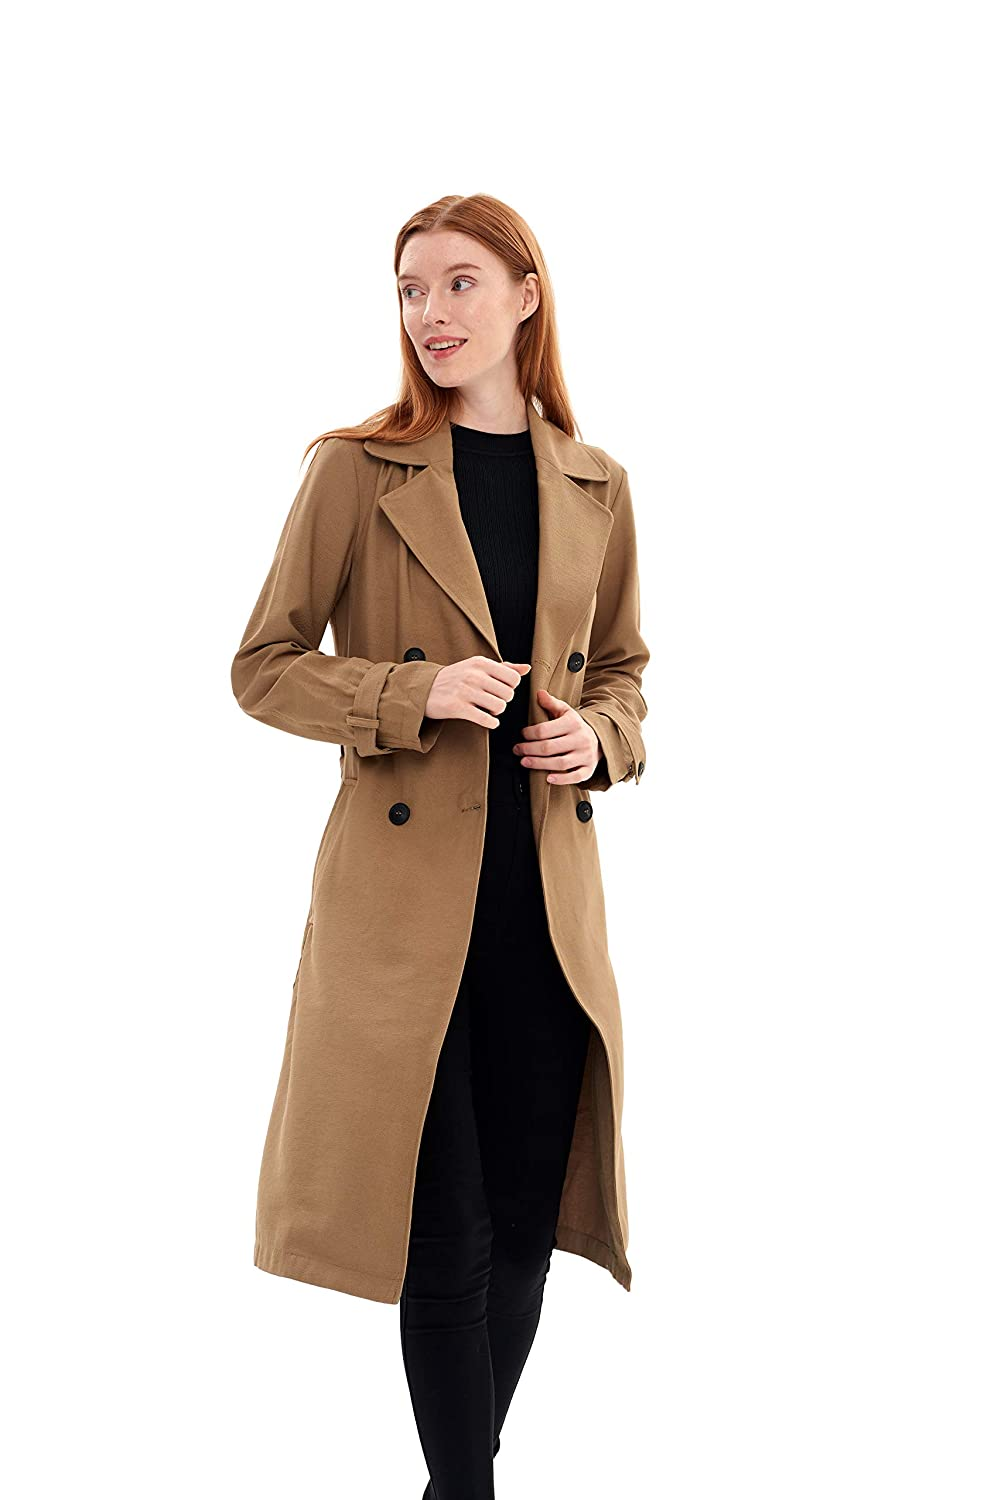 Khaki Charis Allure Womens Lace-up Double-Breasted Lapel Trench Coat